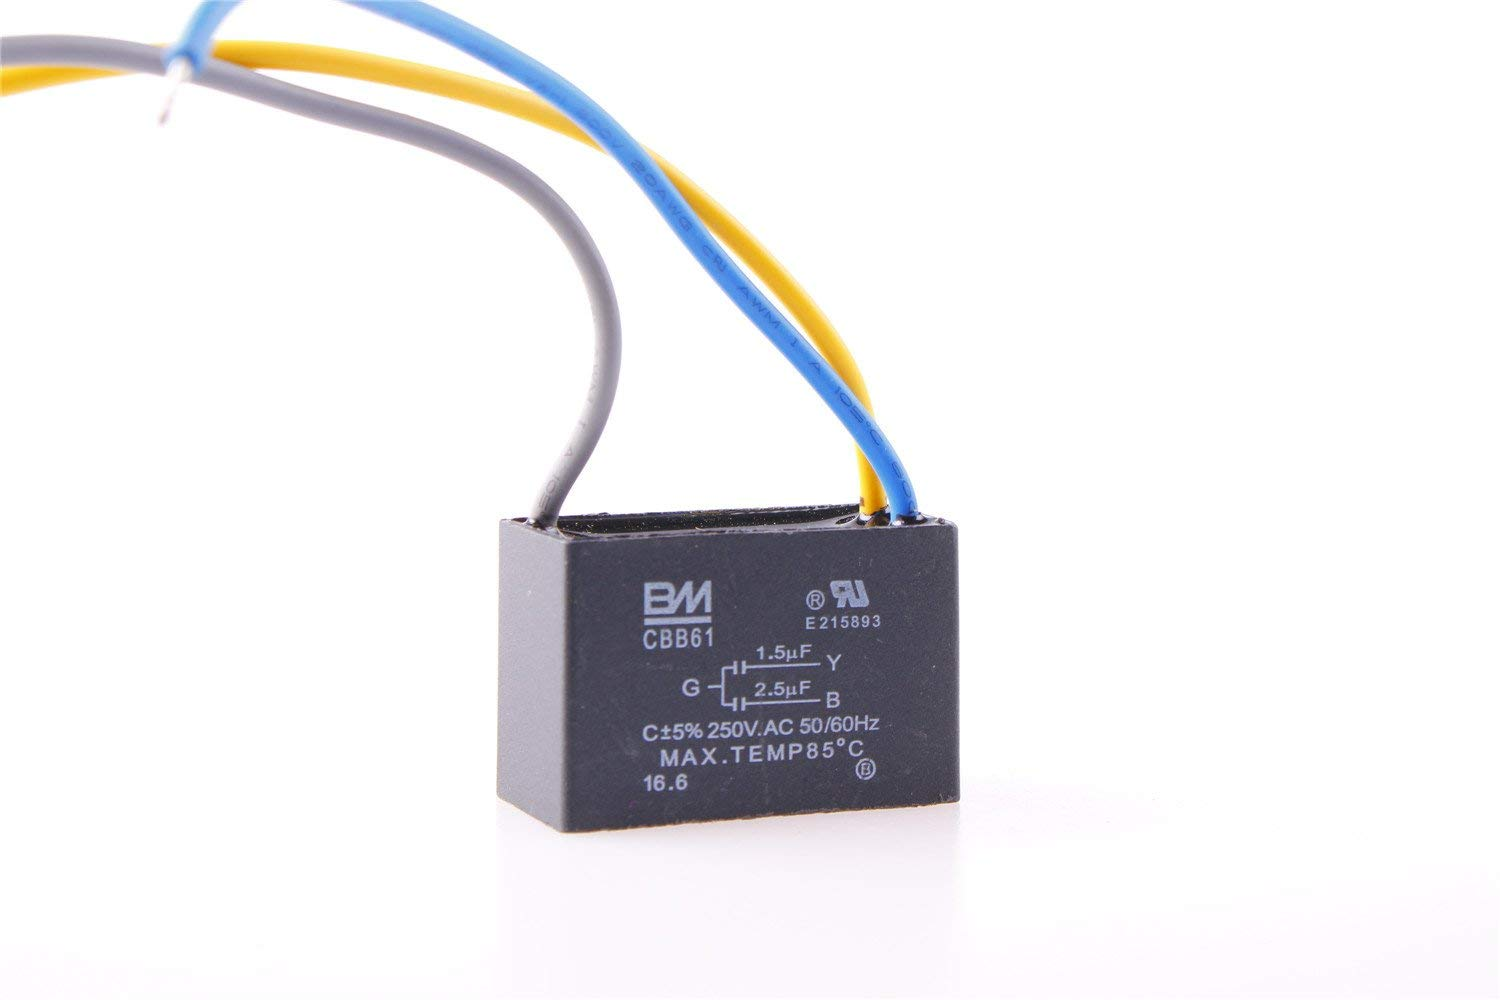 Cheap Ac Fan Capacitor 2 5uf Find Deals On Electrical Circuit Get Quotations 1x Cbb61 Ac250v 15uf 25uf Electric Run Start 3 Wired